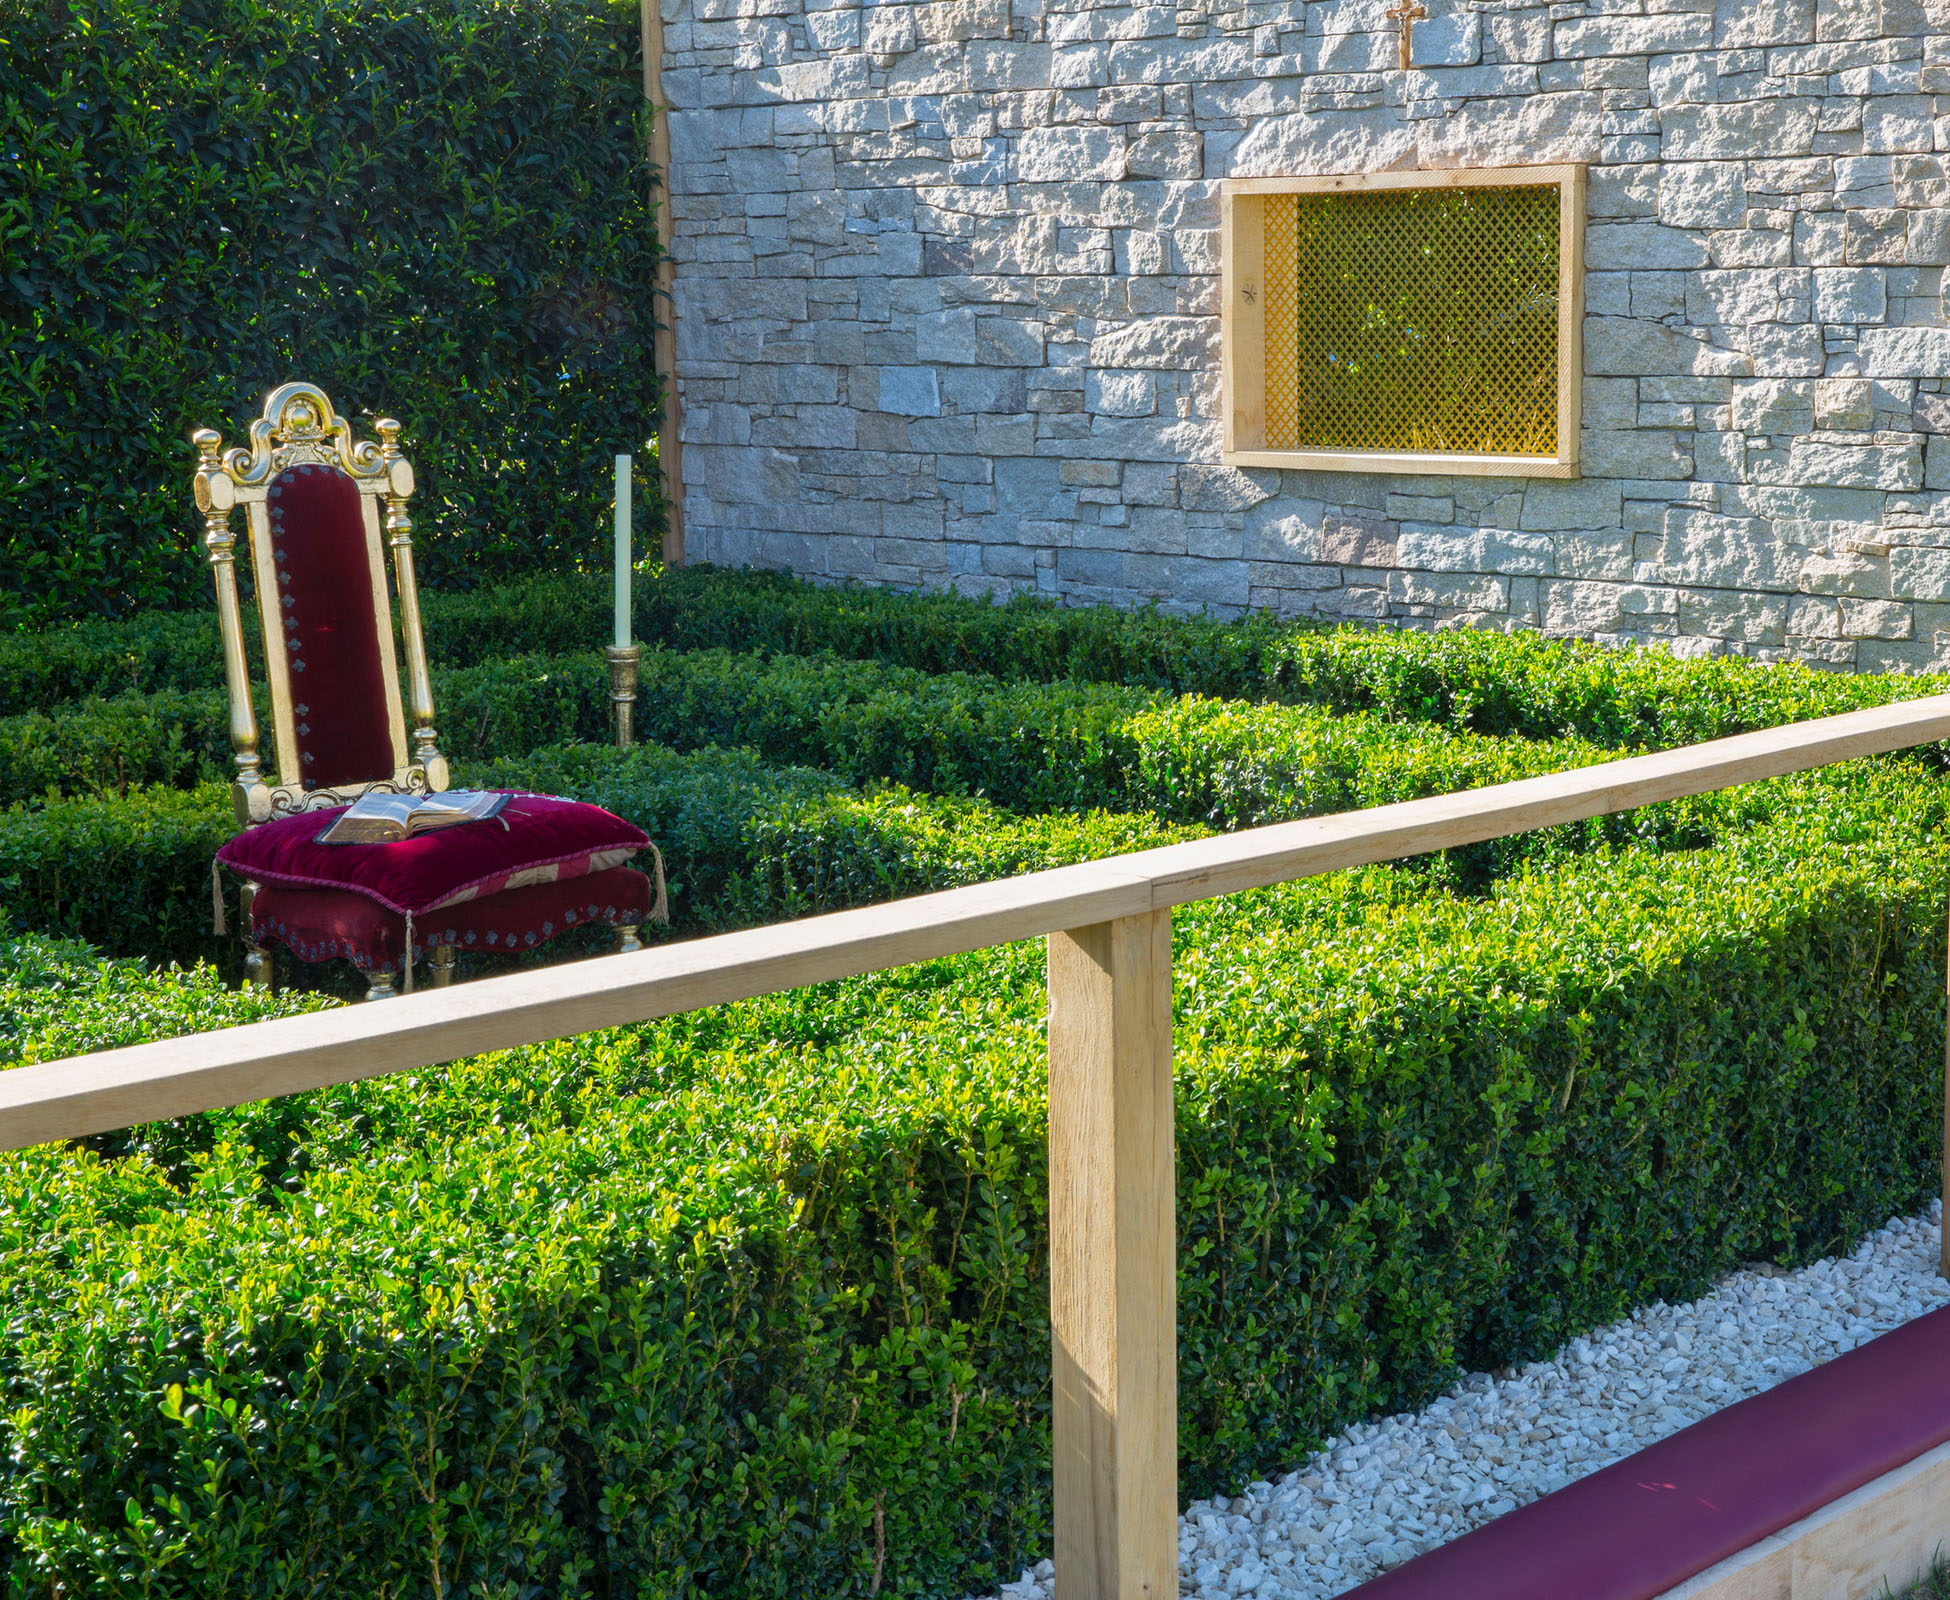 The red velvet chair in the controlled garden is surrounded by clipped evergreen box hedges.